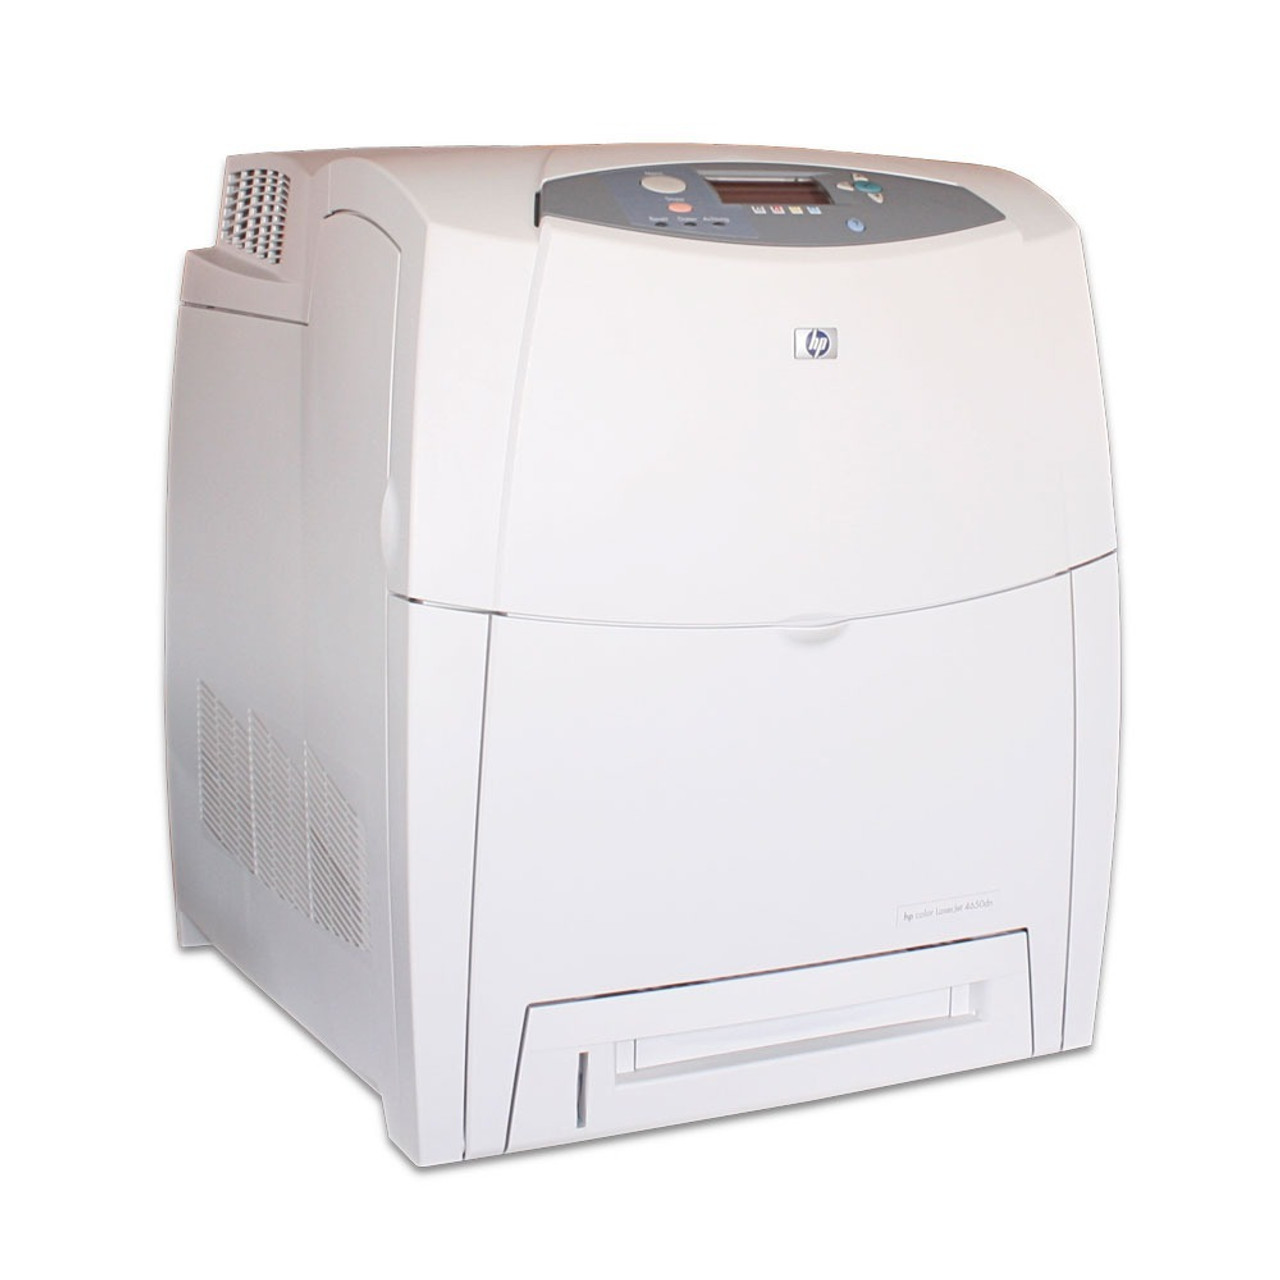 HP Color LaserJet 4650n - Q3669A - HP Laser Printer for sale with low cost shipping